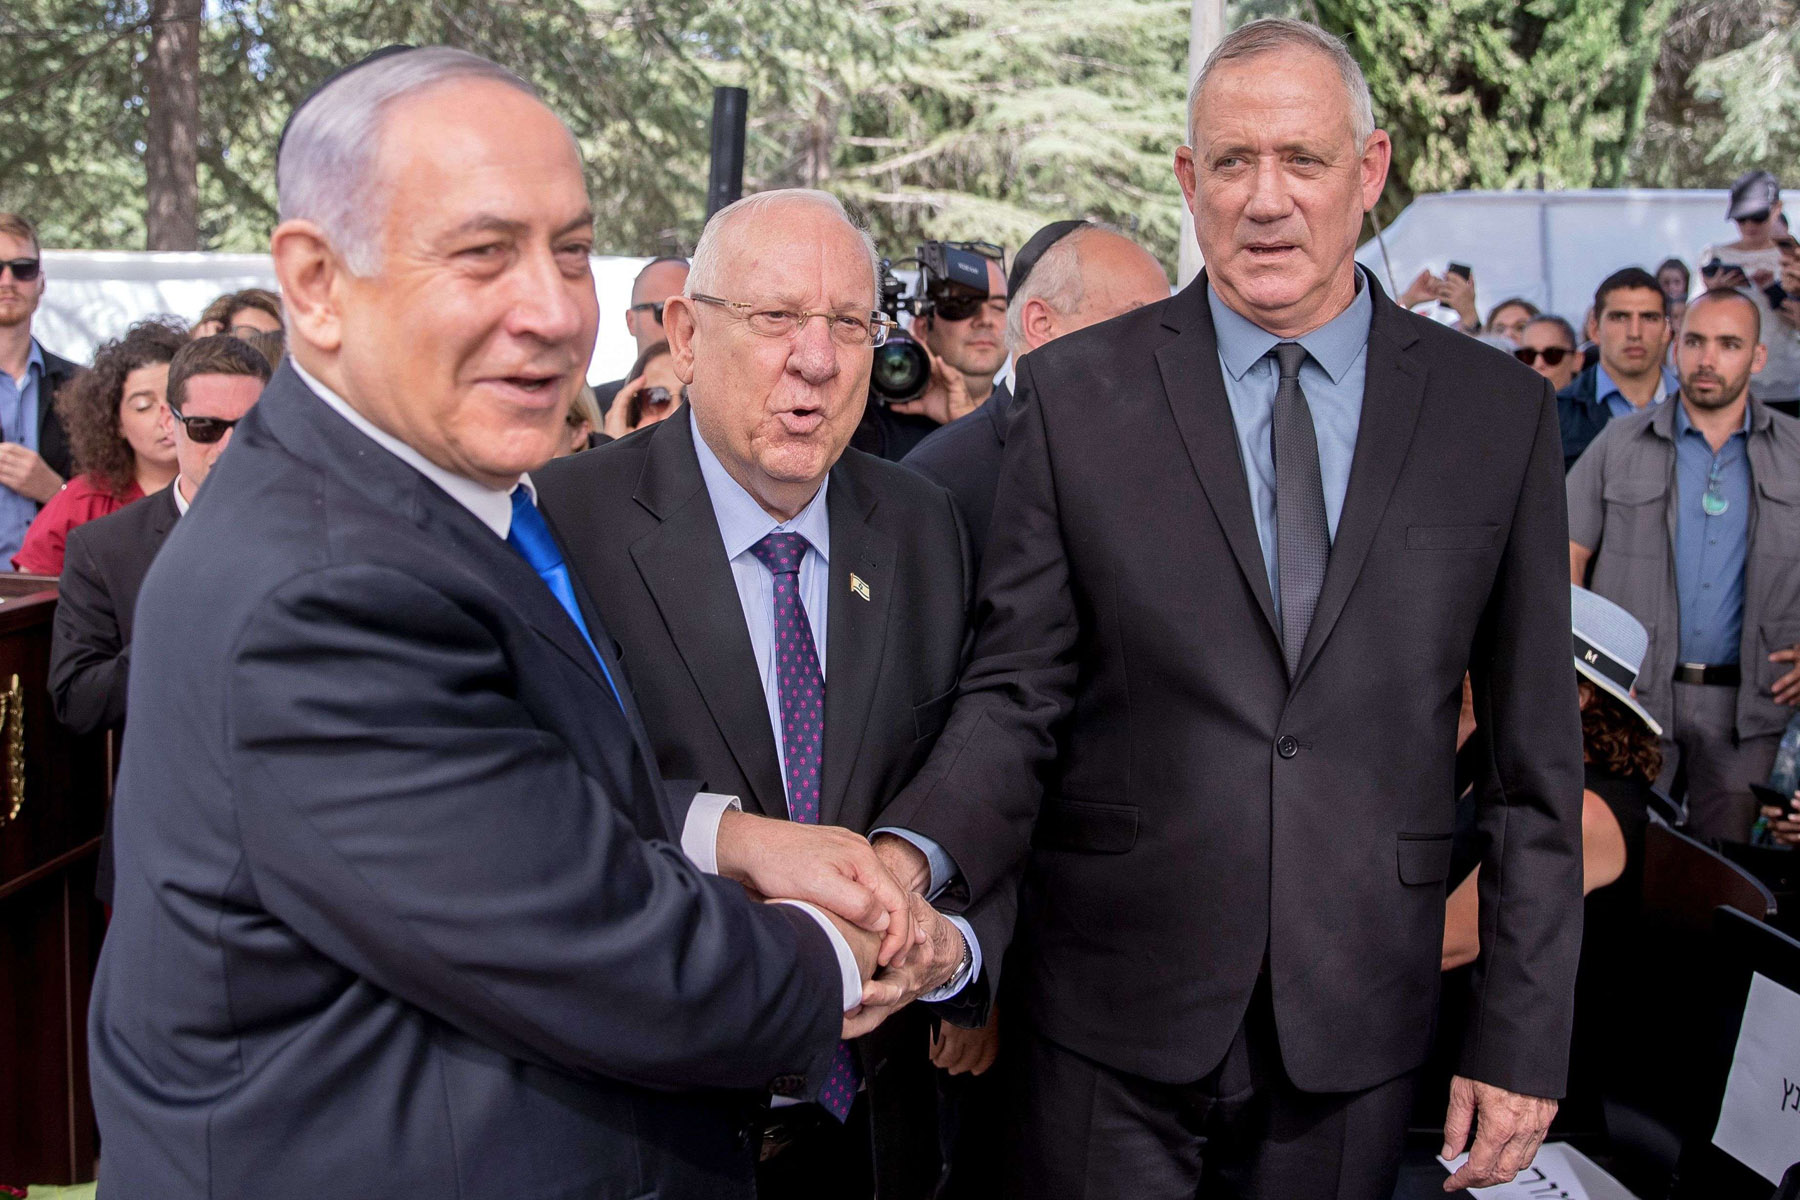 More united than divided. Israeli Prime Minister Binyamin Netanyahu (L), President Reuven Rivlin (C) and Benny Gantz, leader of Blue and White alliance, attend a memorial ceremony for late Israeli President Shimon Peres at Mount Herzl in Jerusalem, September 19.(AFP)